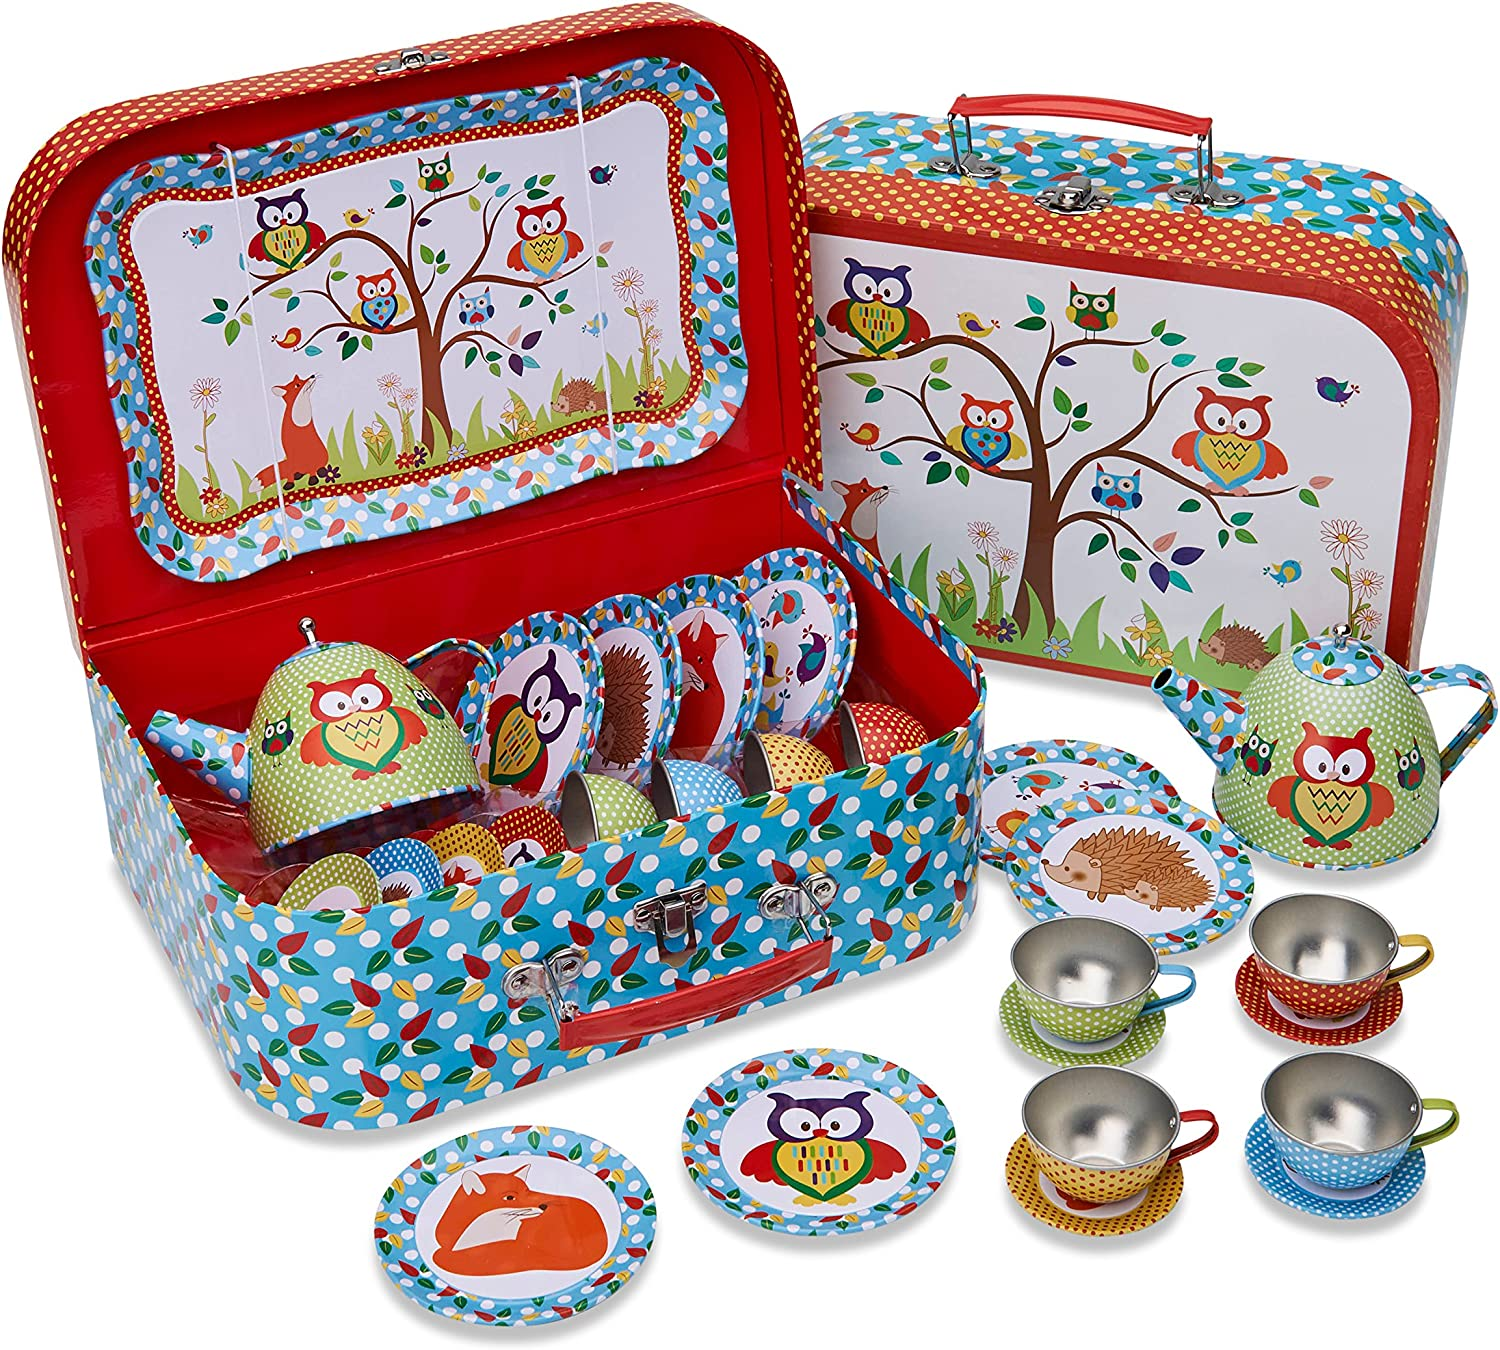 Top 10 Best Tea Sets for Kids Reviews in 2020 10